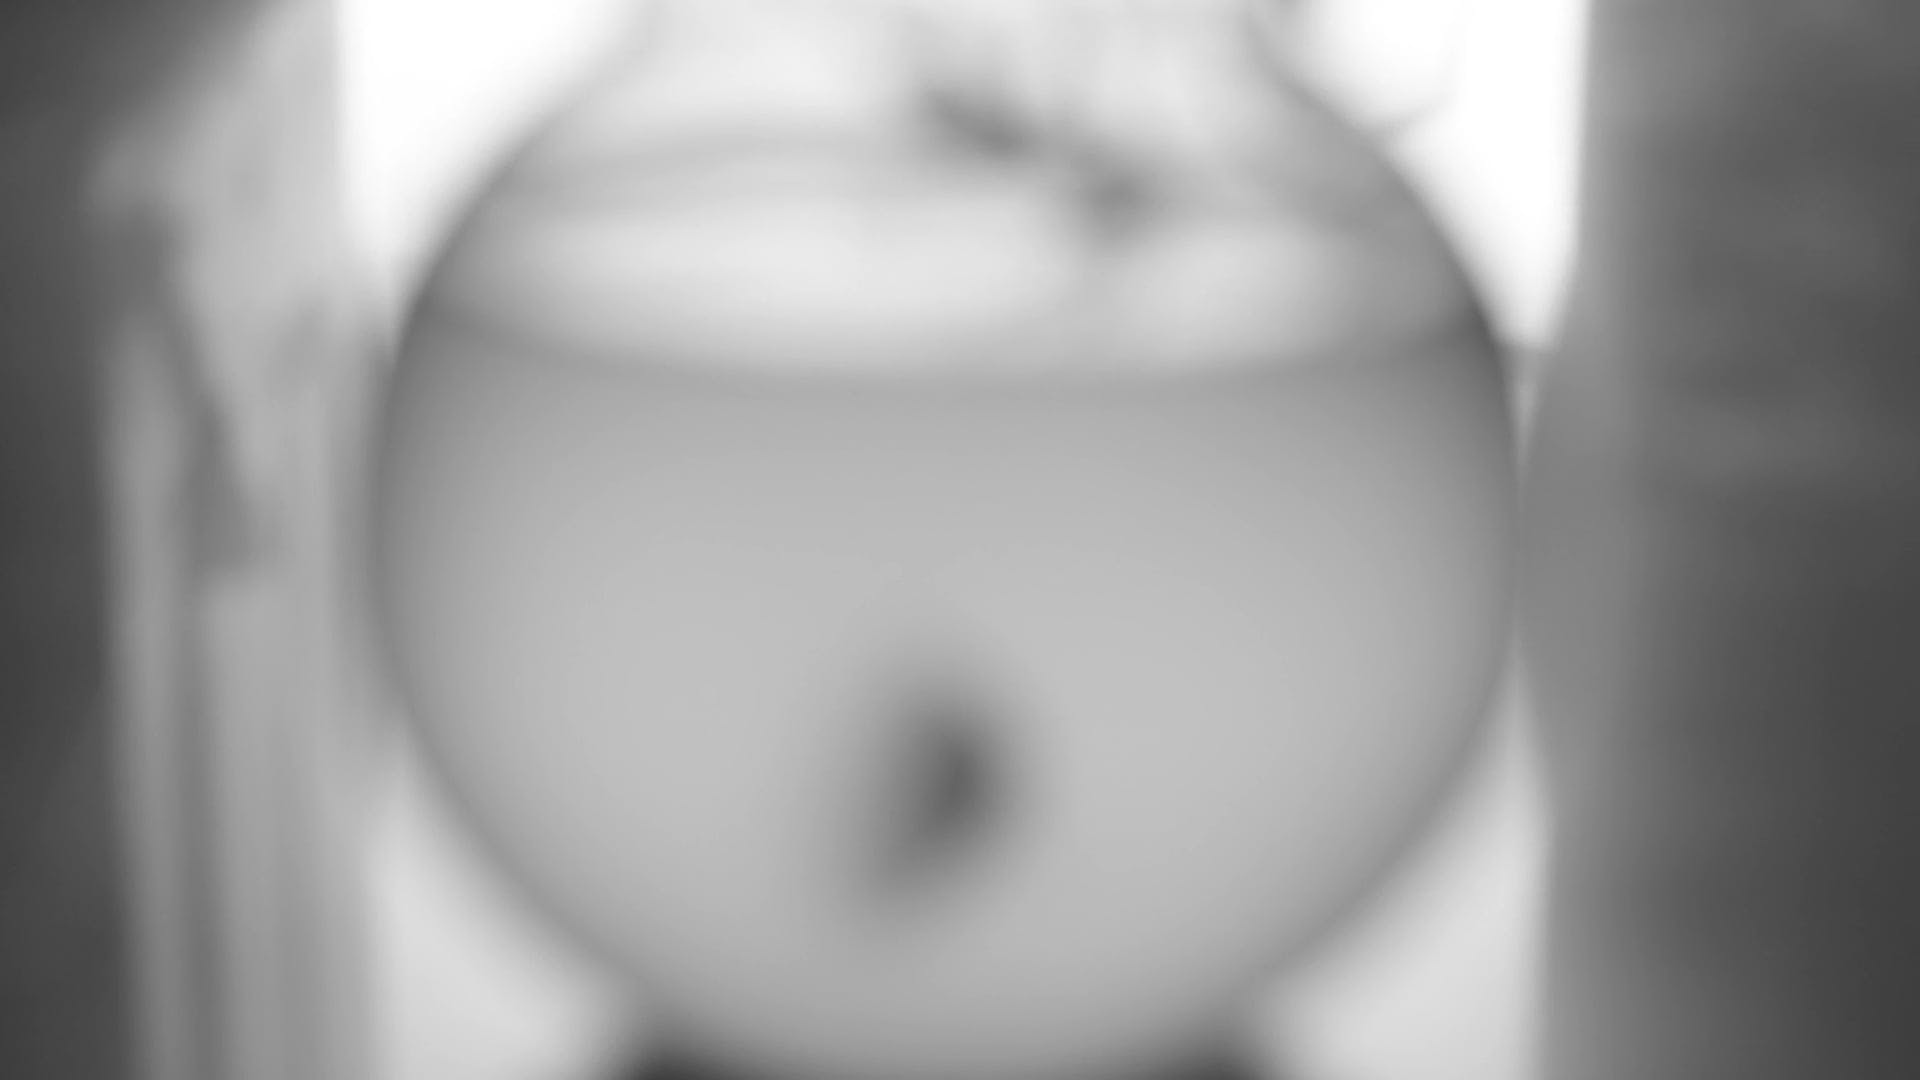 Blurred View Of A Fish In A Fishbowl